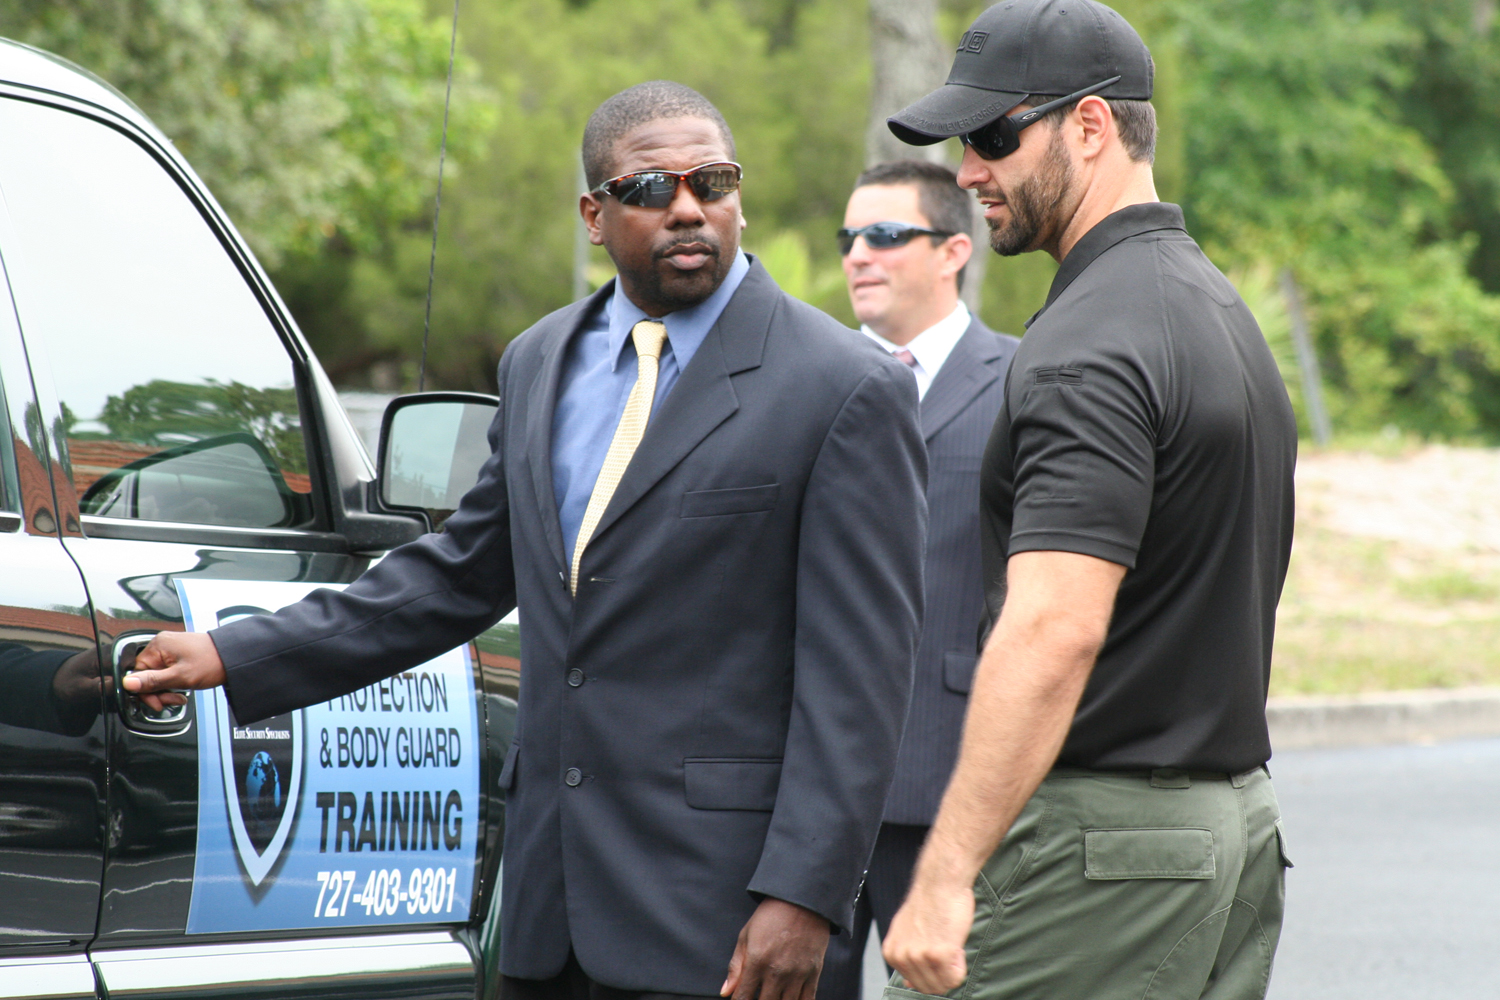 Vip Protection Security